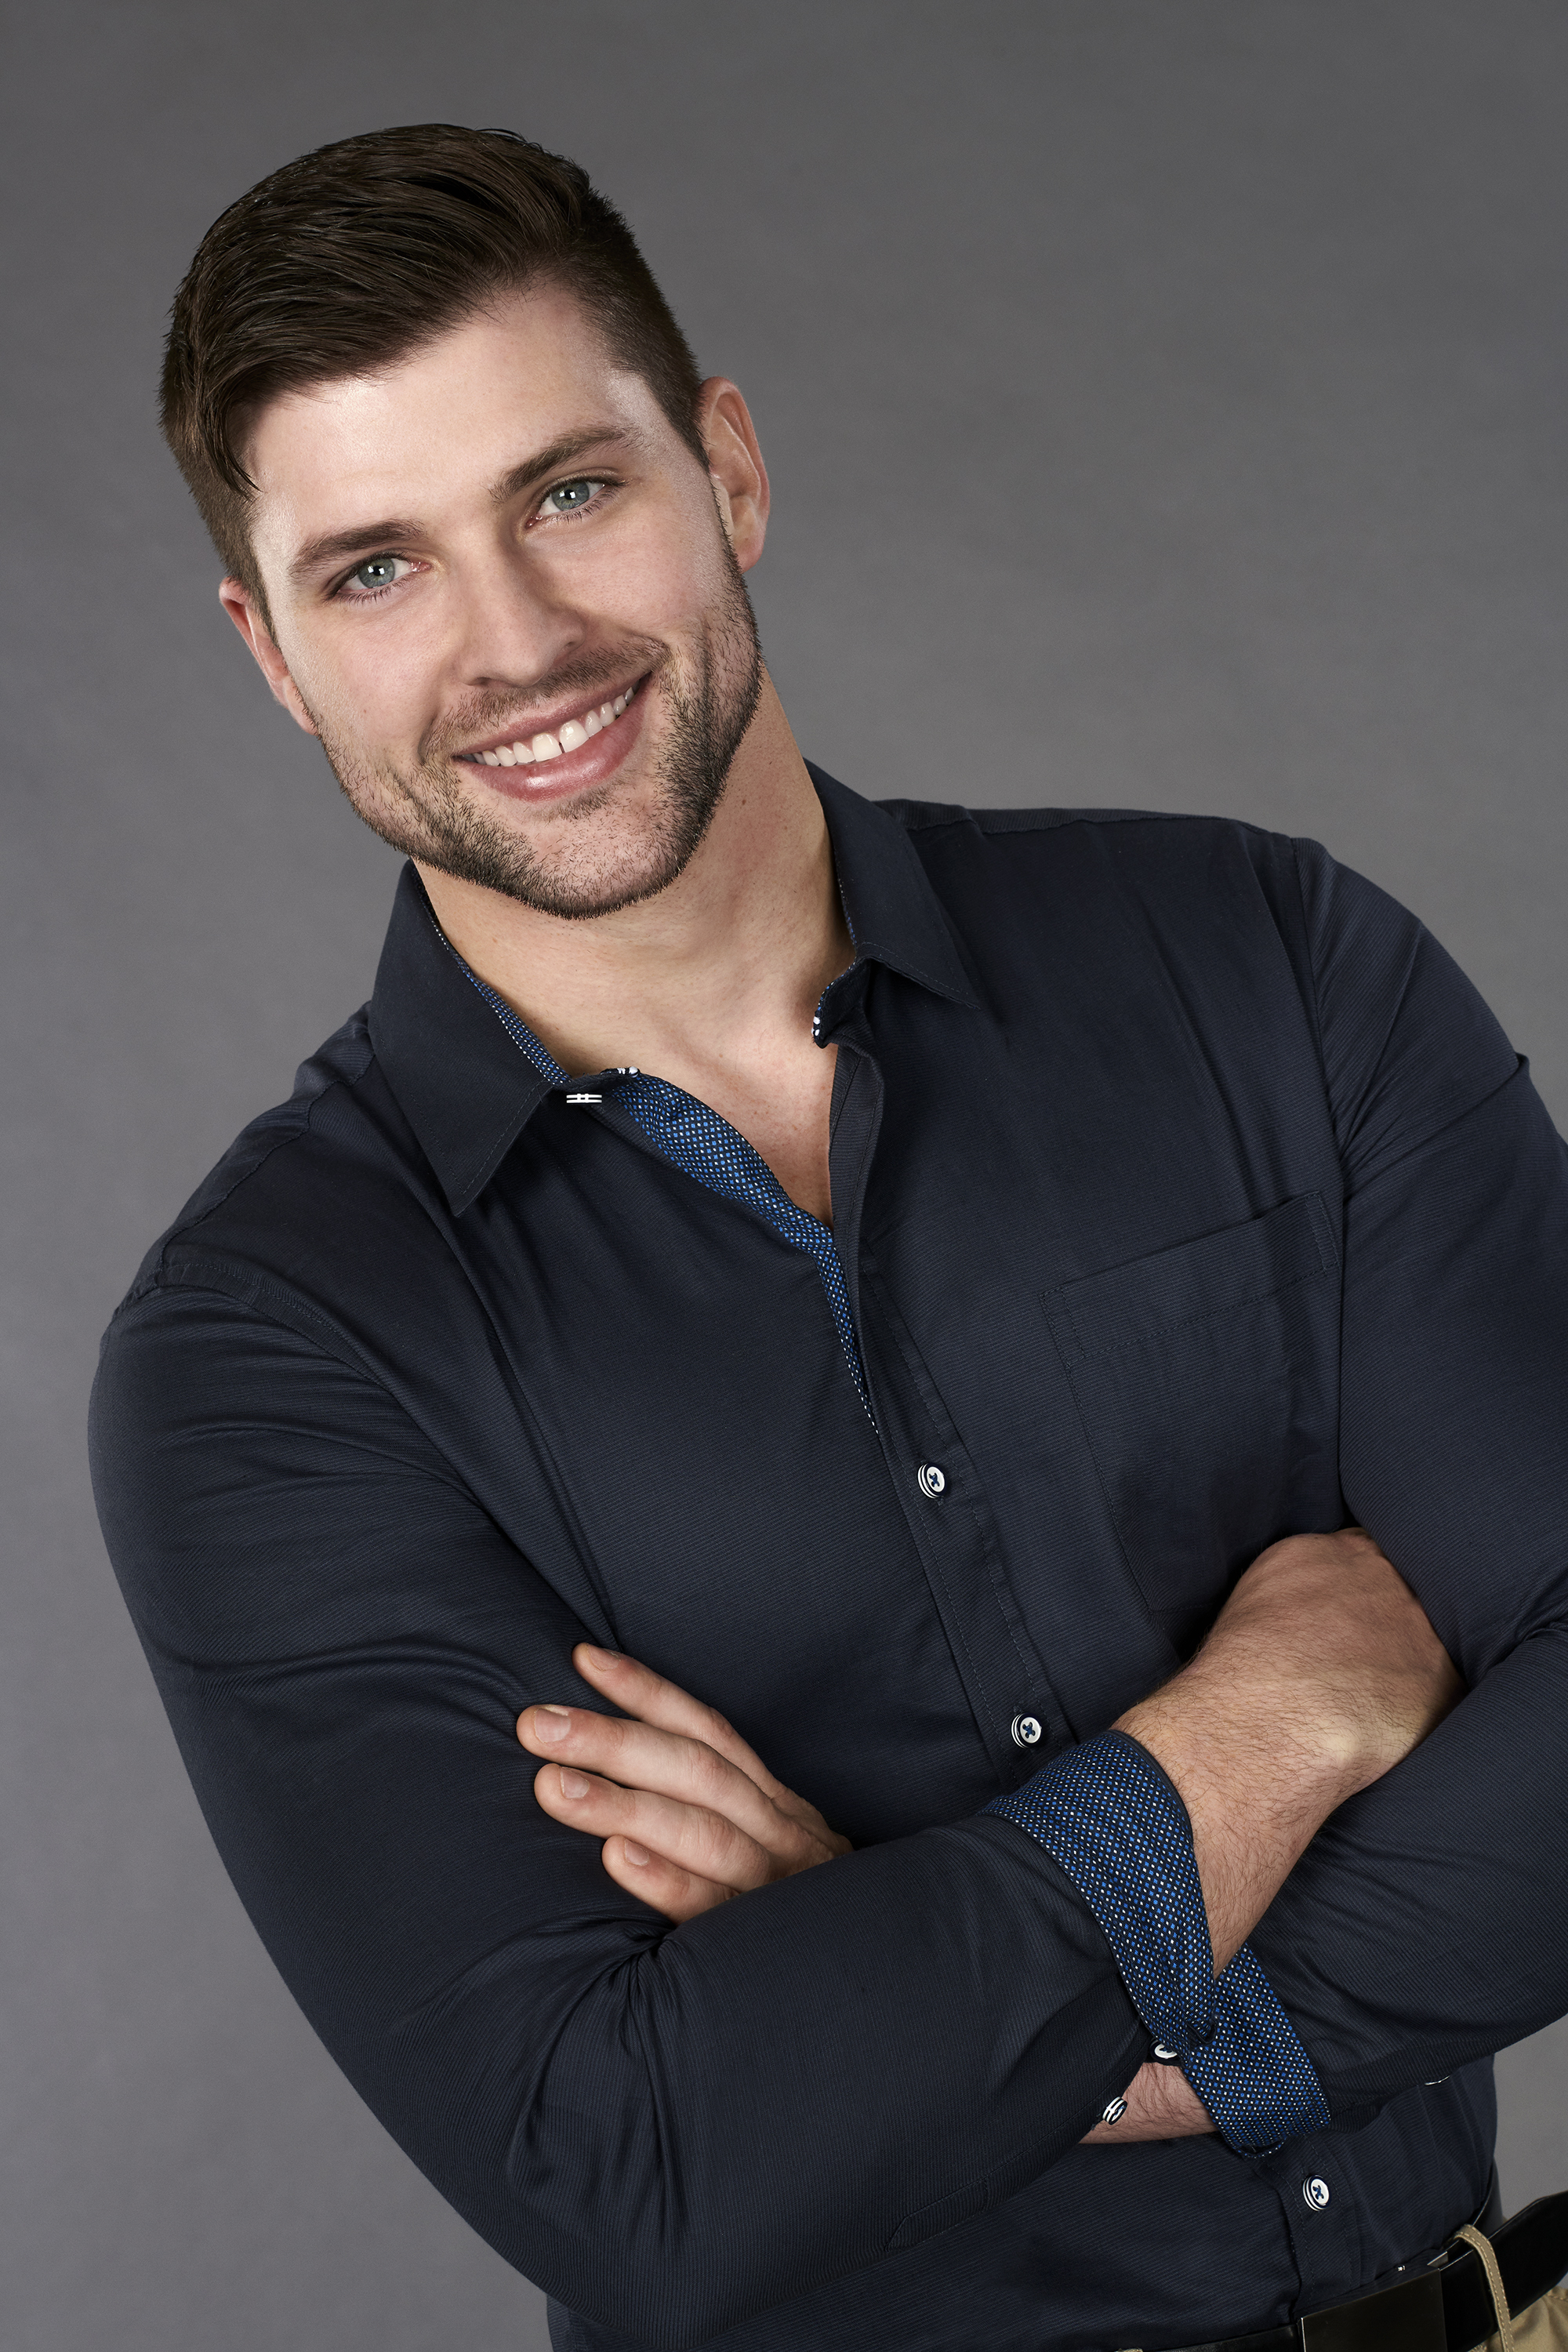 Bachelorette 15 - Kevin Fortenberry - *Sleuthing Spoilers* - Page 2 0b810878-0f41-4b39-8cd0-f399b747f627